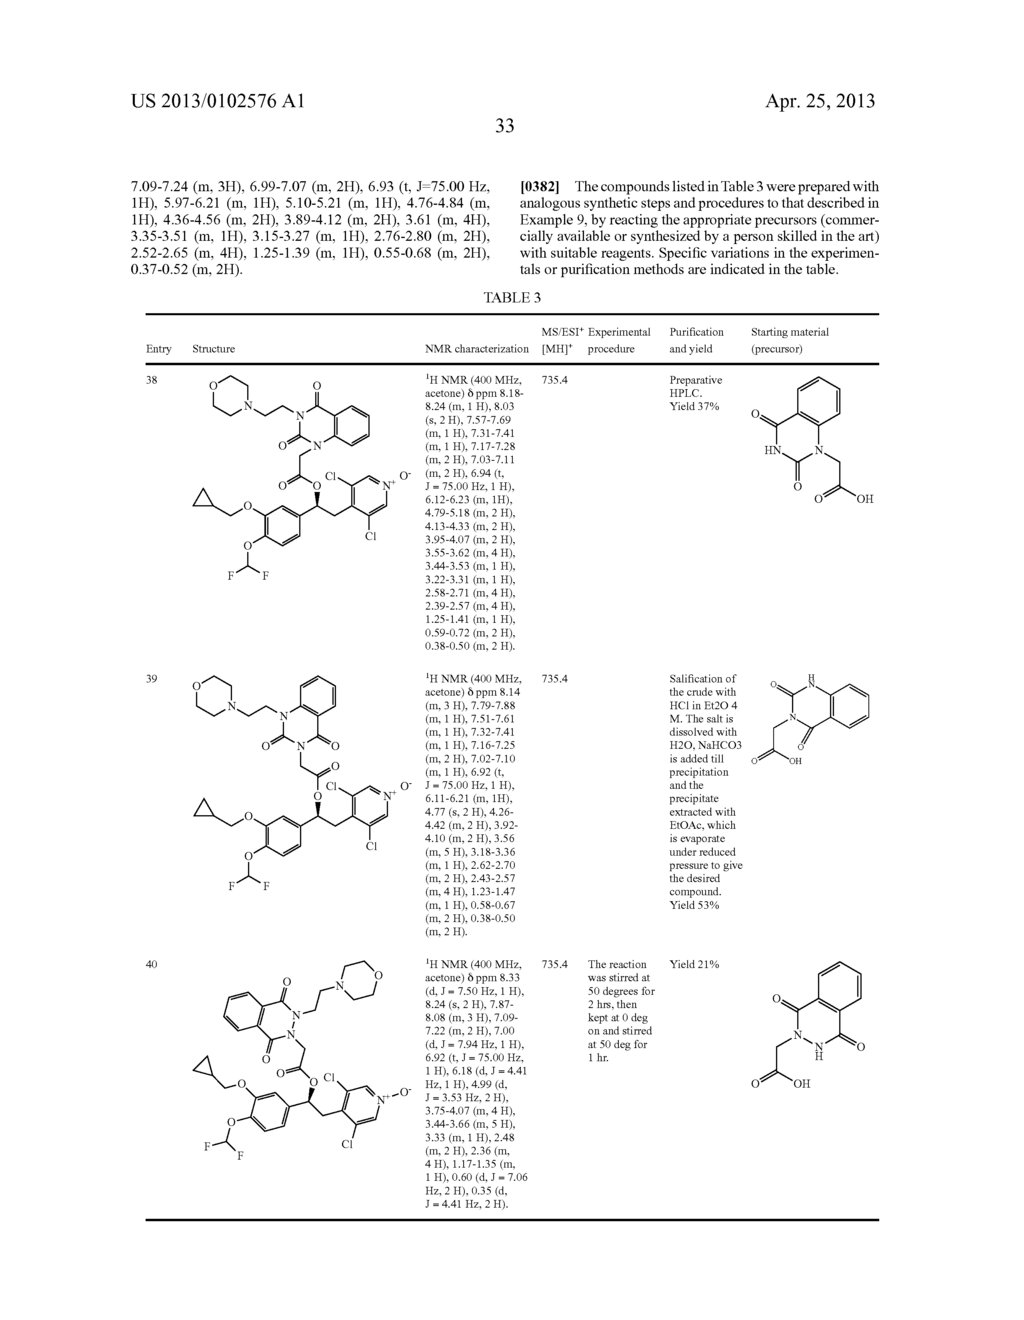 DERIVATIVES OF 1-PHENYL-2-PYRIDINYL ALKYL ALCOHOLS AS PHOSPHODIESTERASE     INHIBITORS - diagram, schematic, and image 34